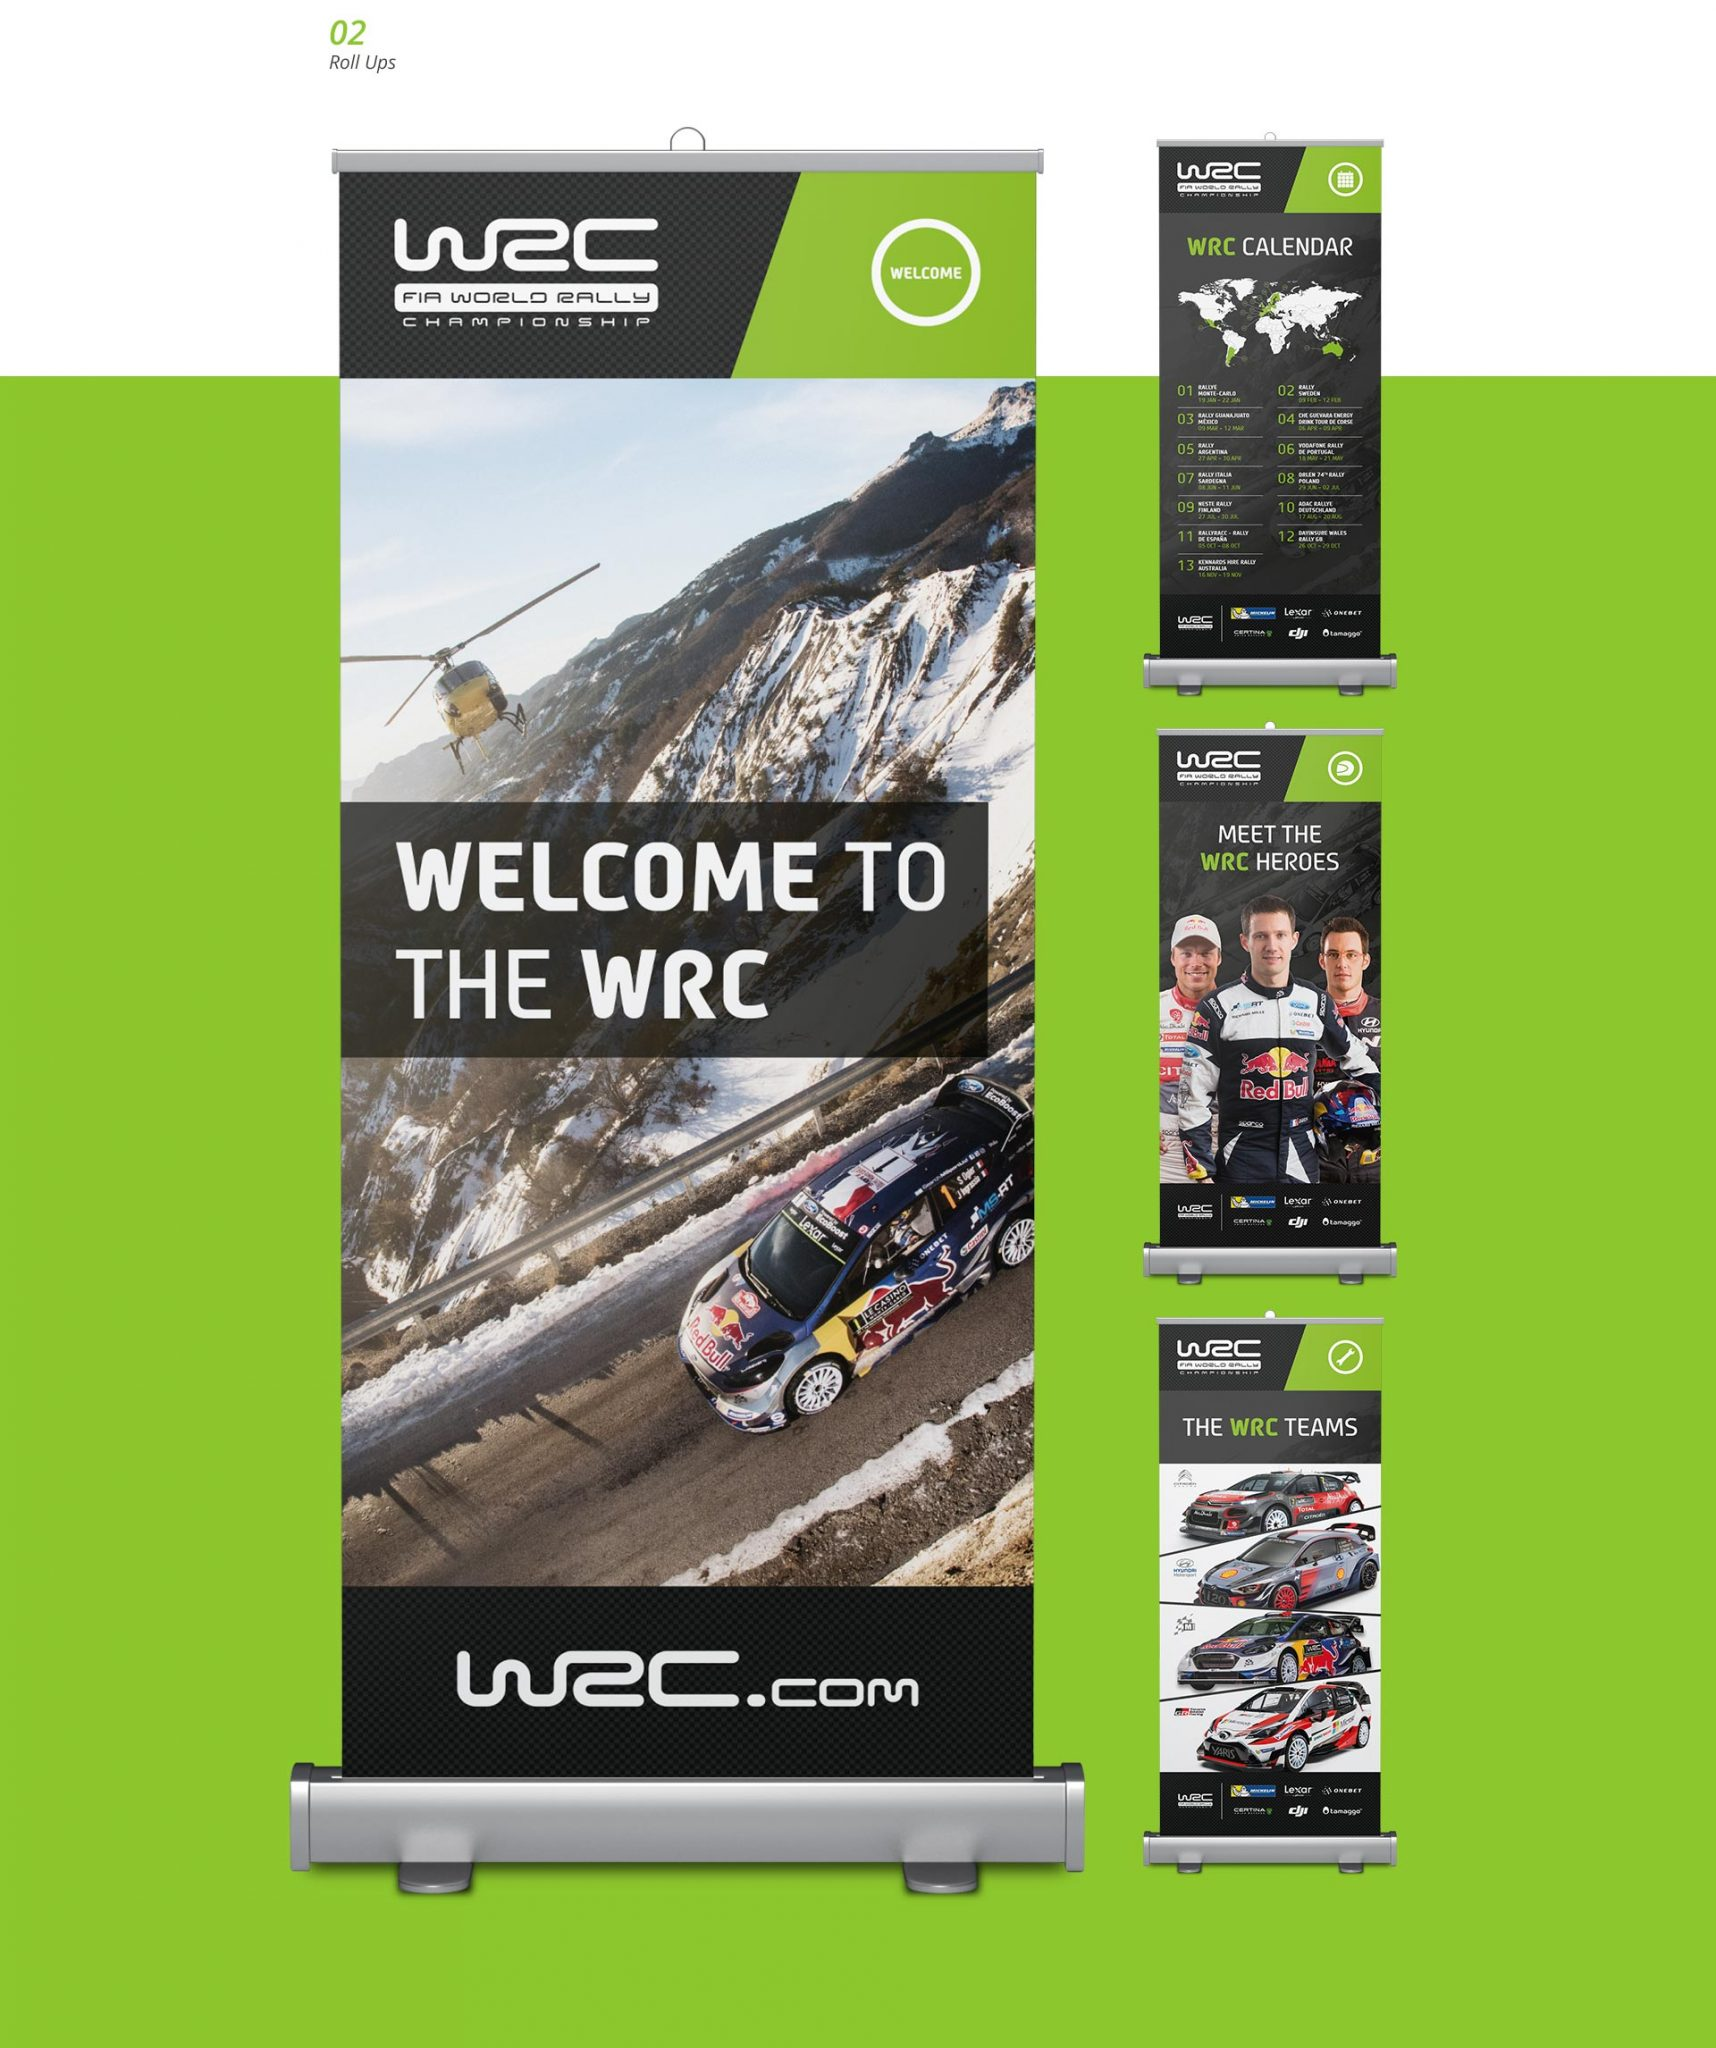 EAZEE Corporate Design WRC Roll Ups